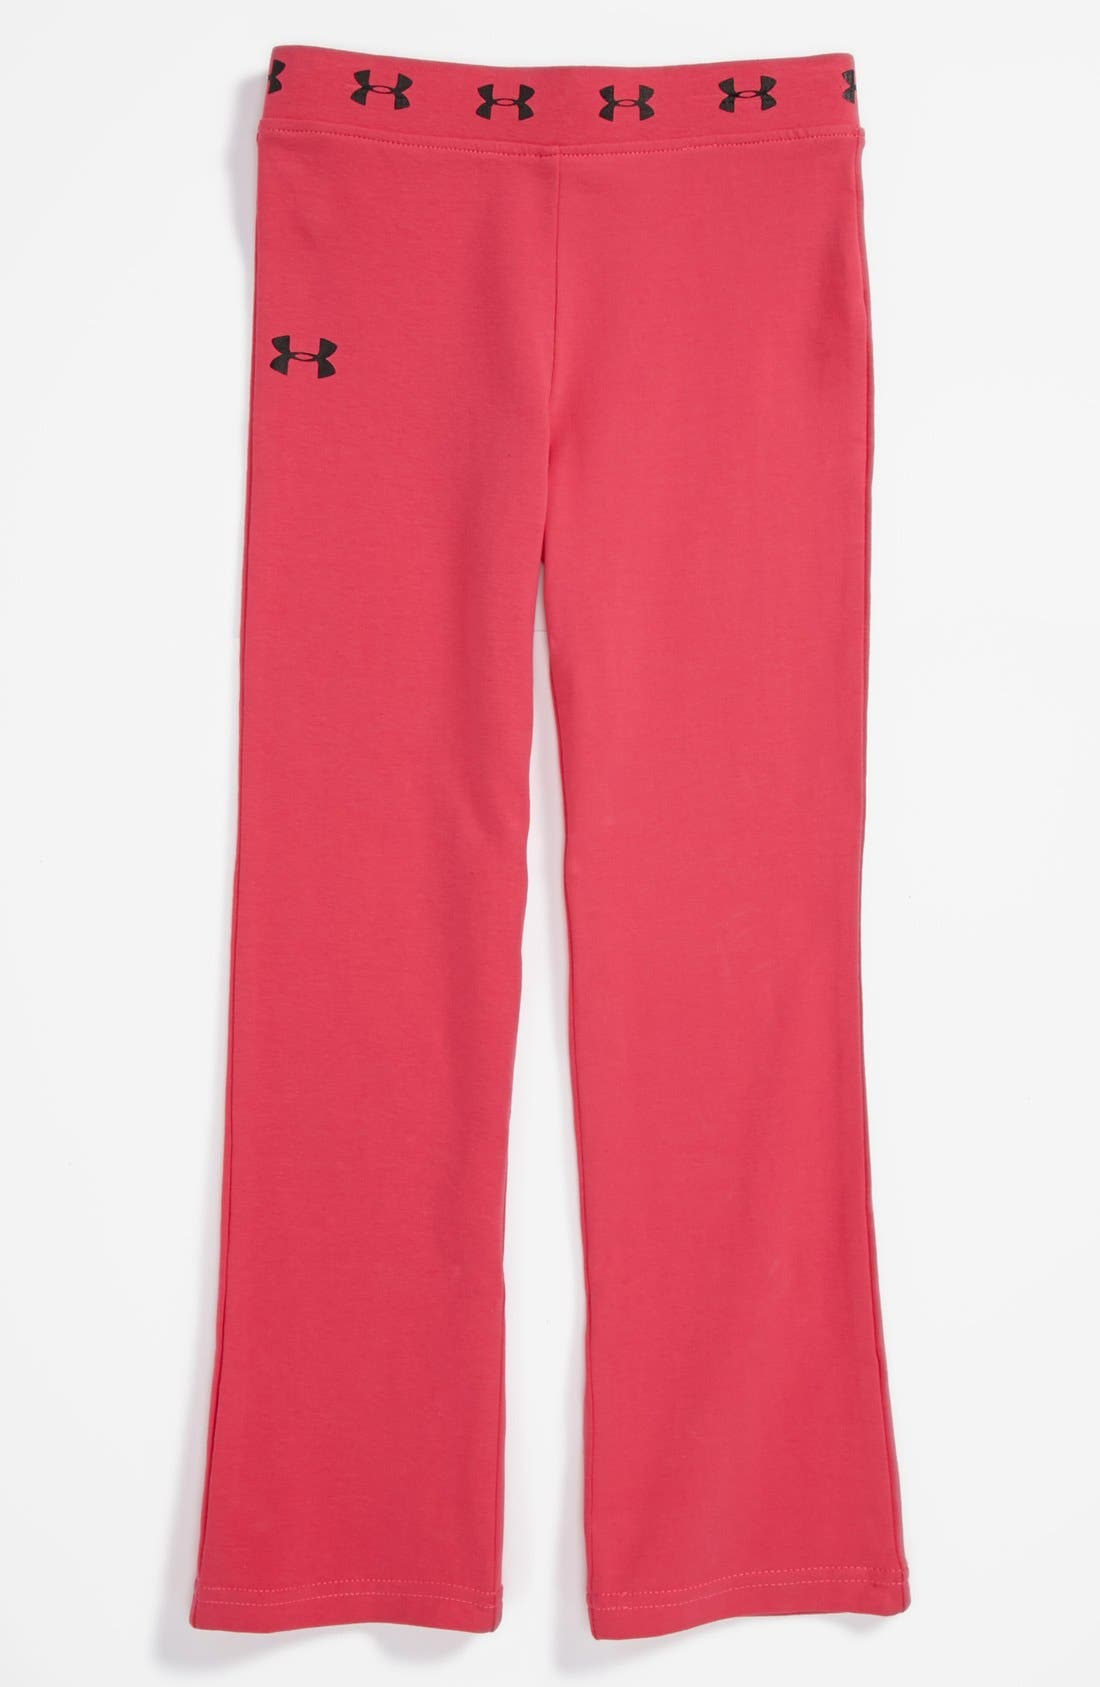 Alternate Image 1 Selected - Under Armour Yoga Pants (Little Girls)